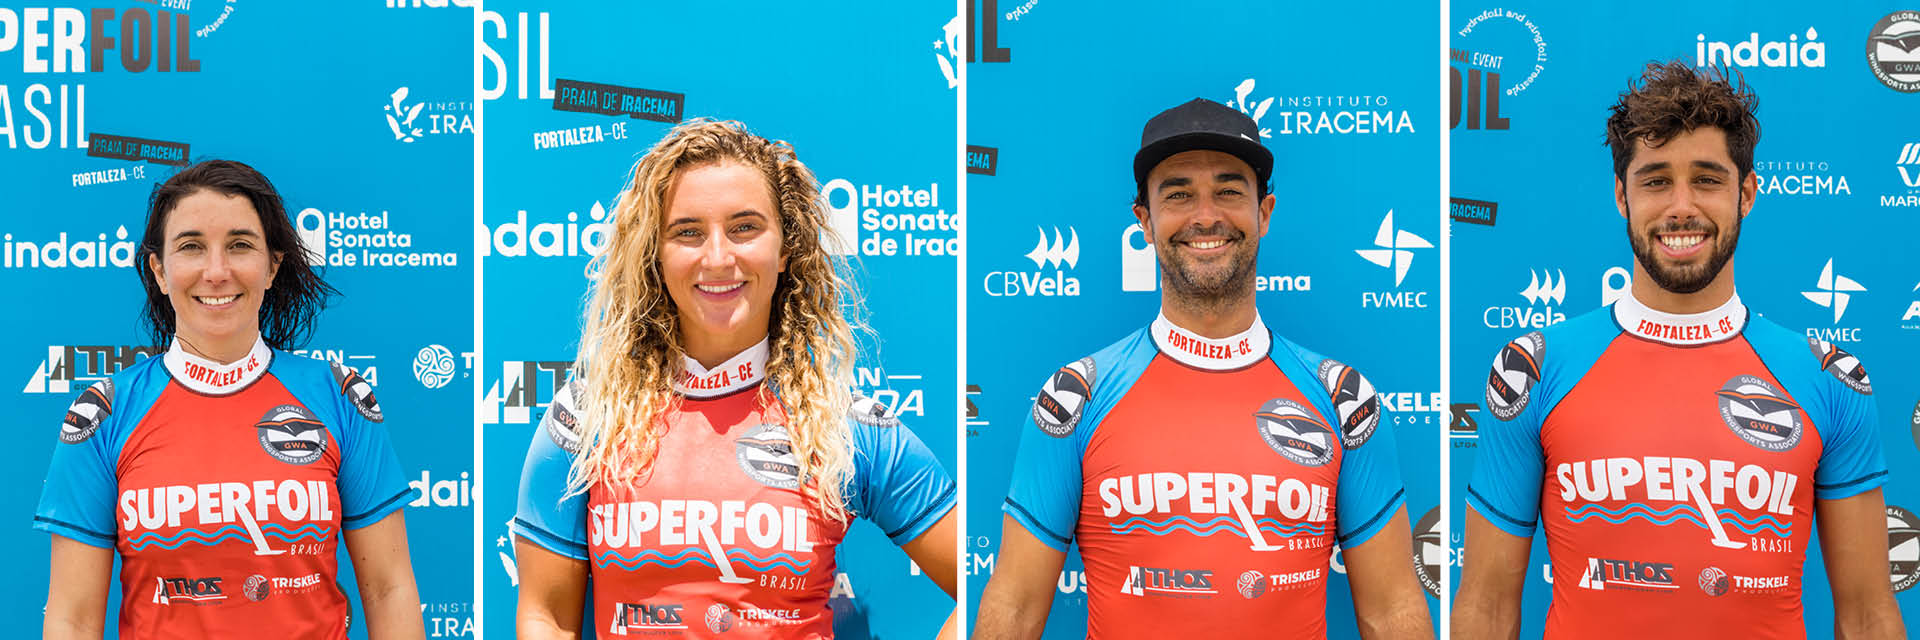 Duotone riders at the GWA SuperFoil Brasil